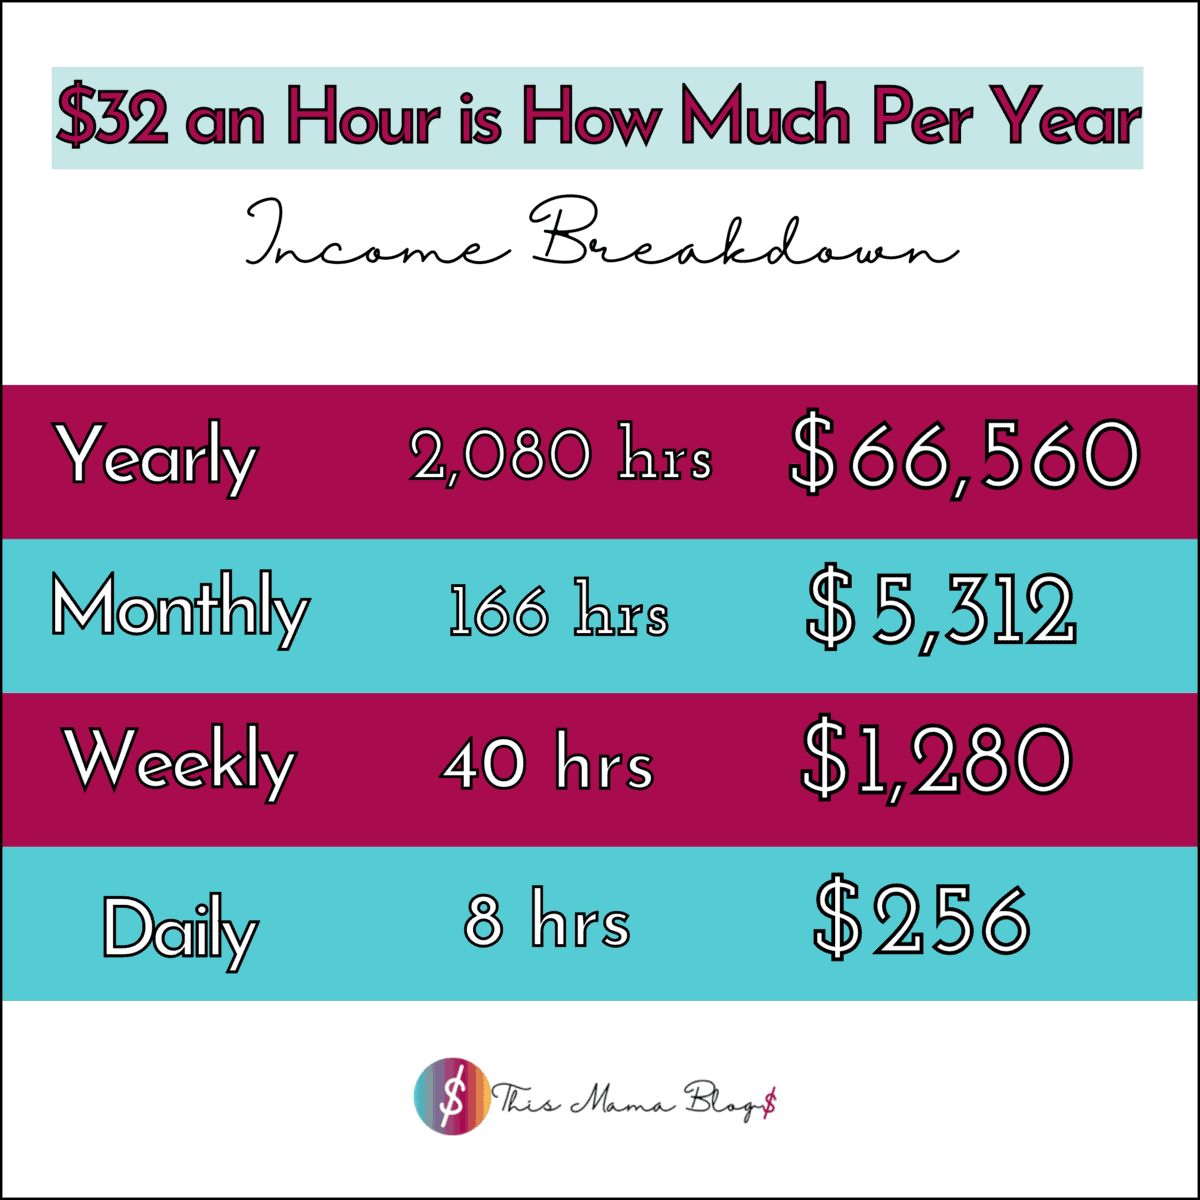 $32 an hour is how much per year income breakdown